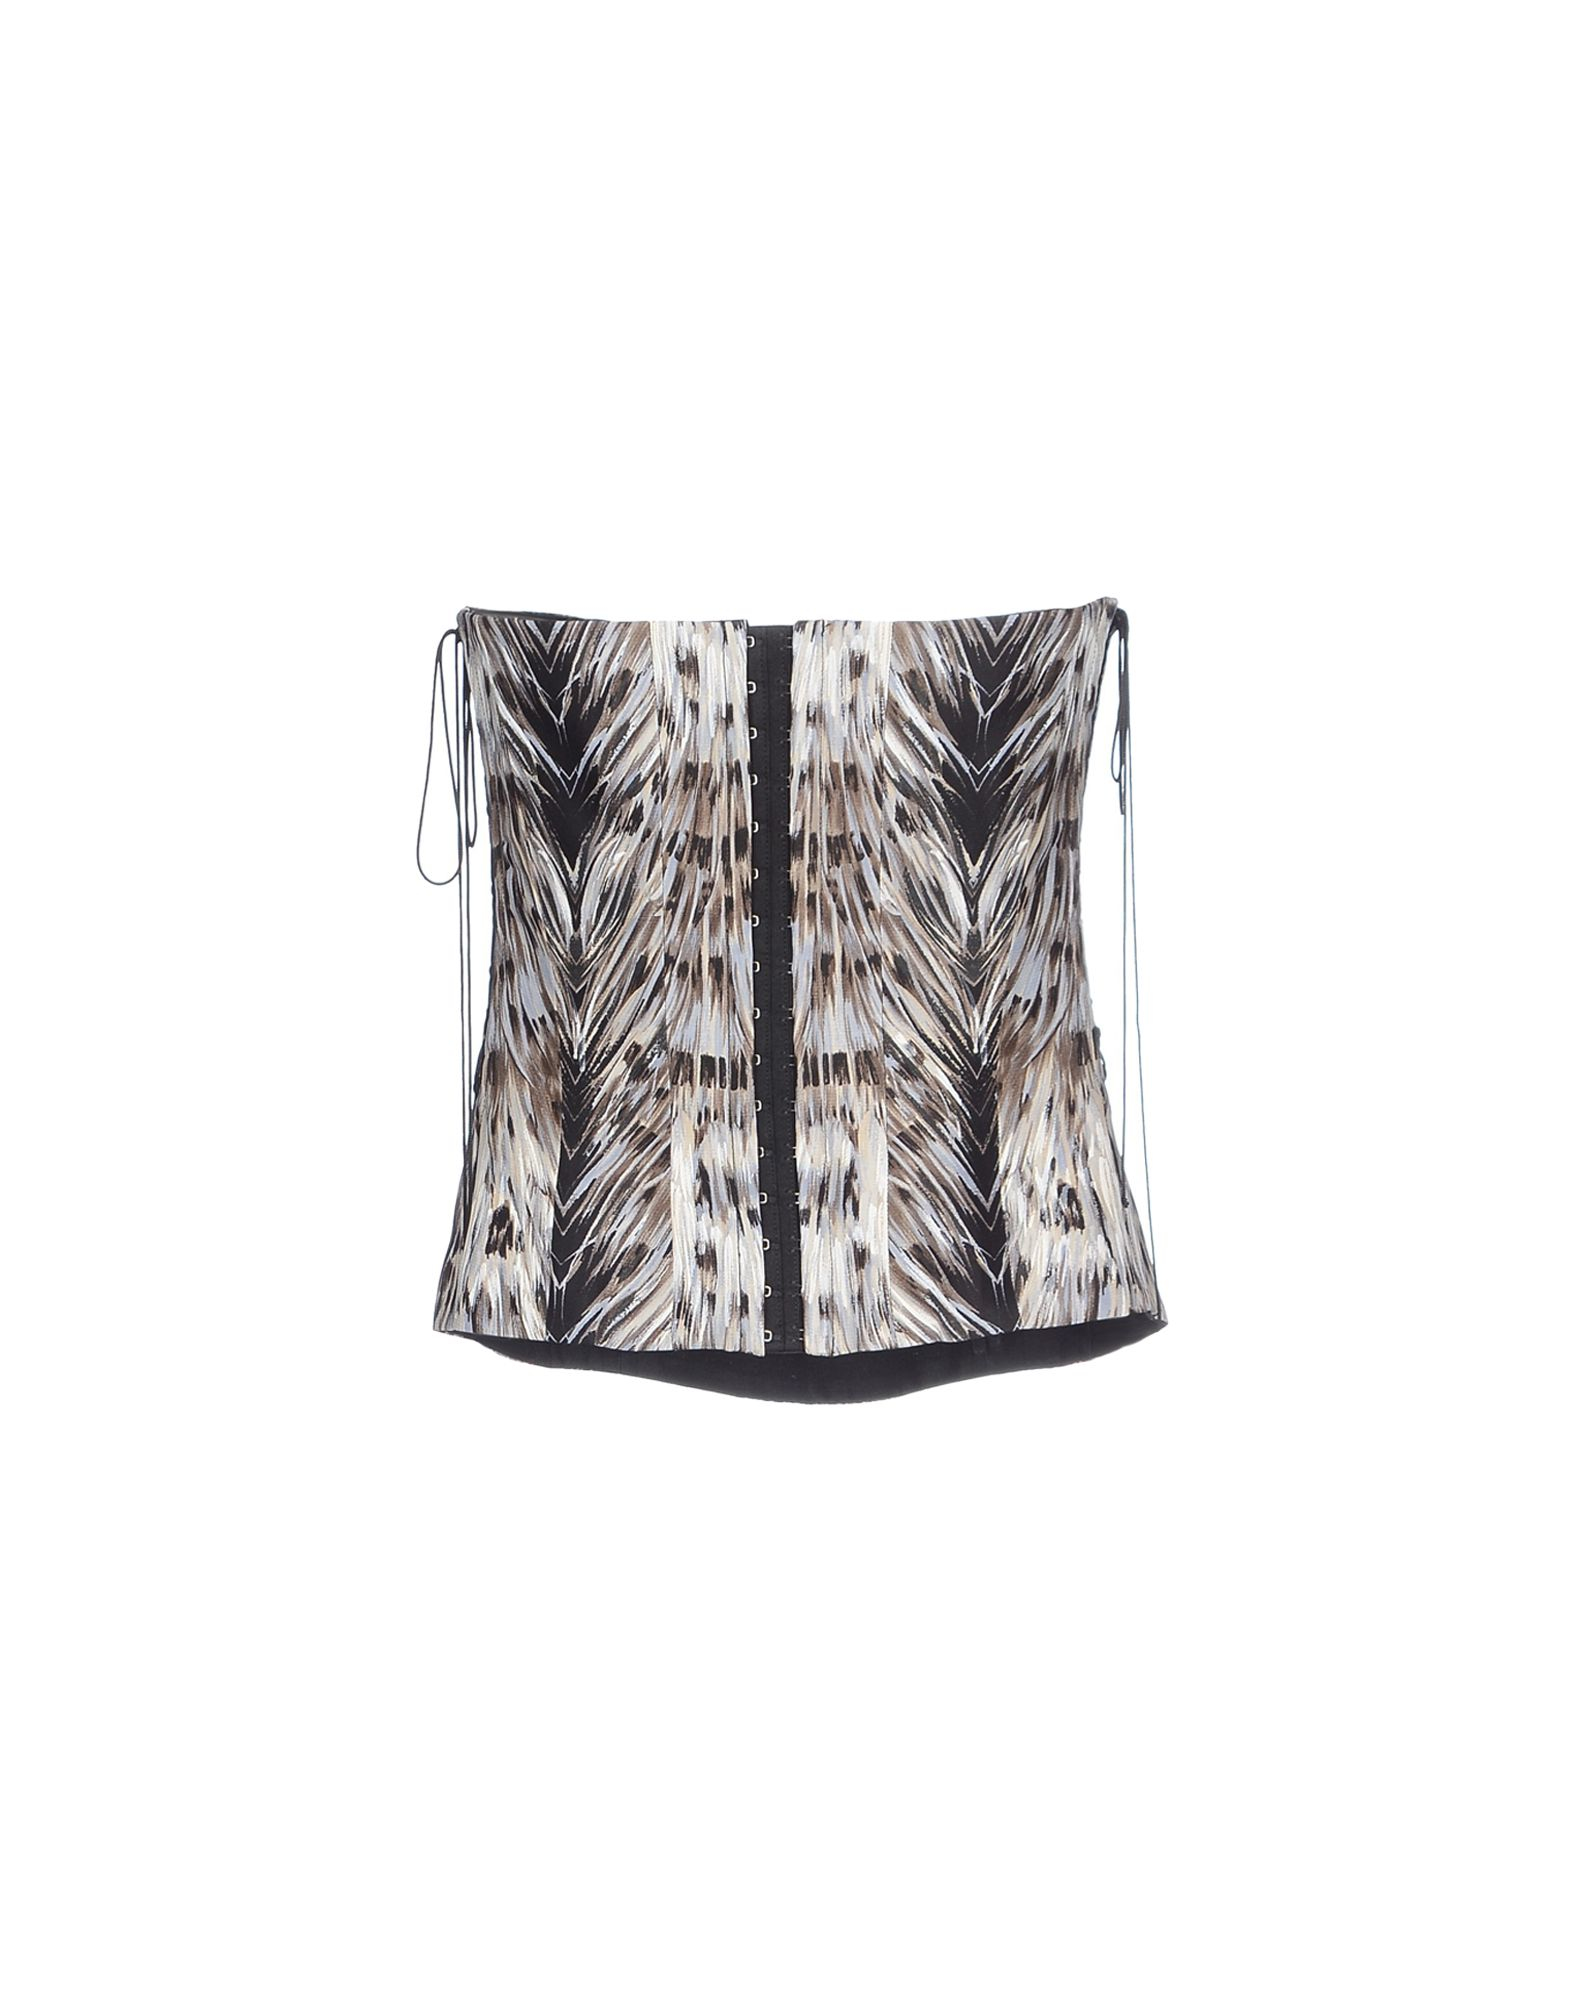 lyst - roberto cavalli tube top in natural